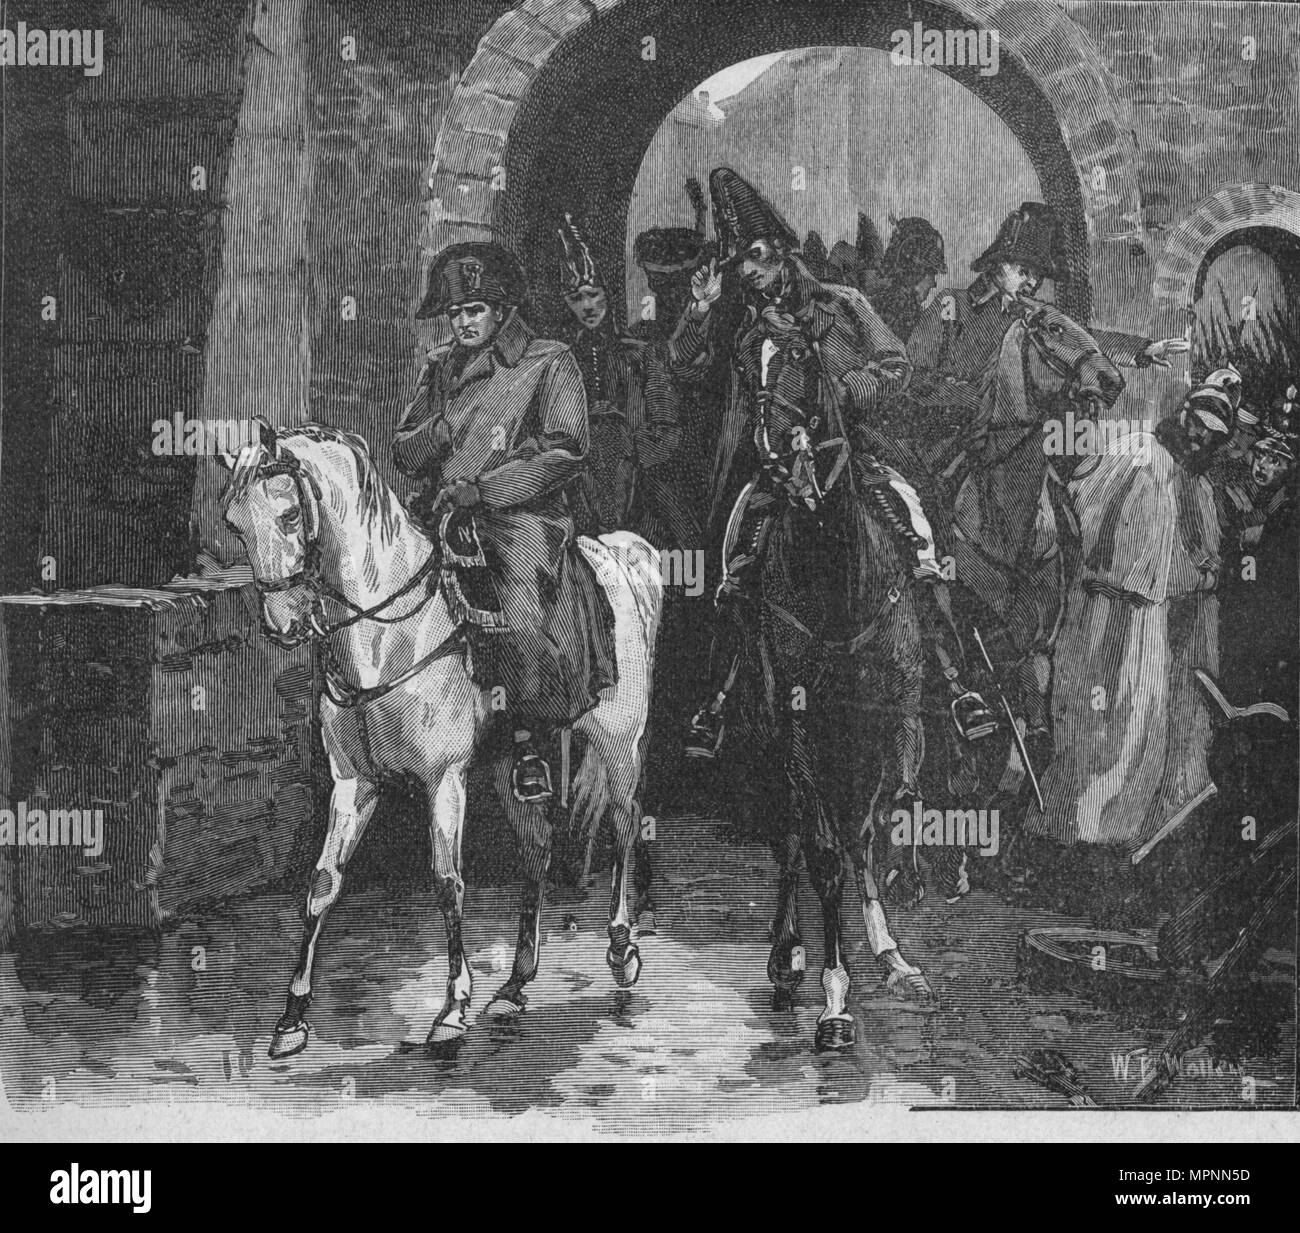 Napoleon Rode Away With A Small Suite Through St. Peter's Gate, 1902. Artist: William Barnes Wollen. - Stock Image